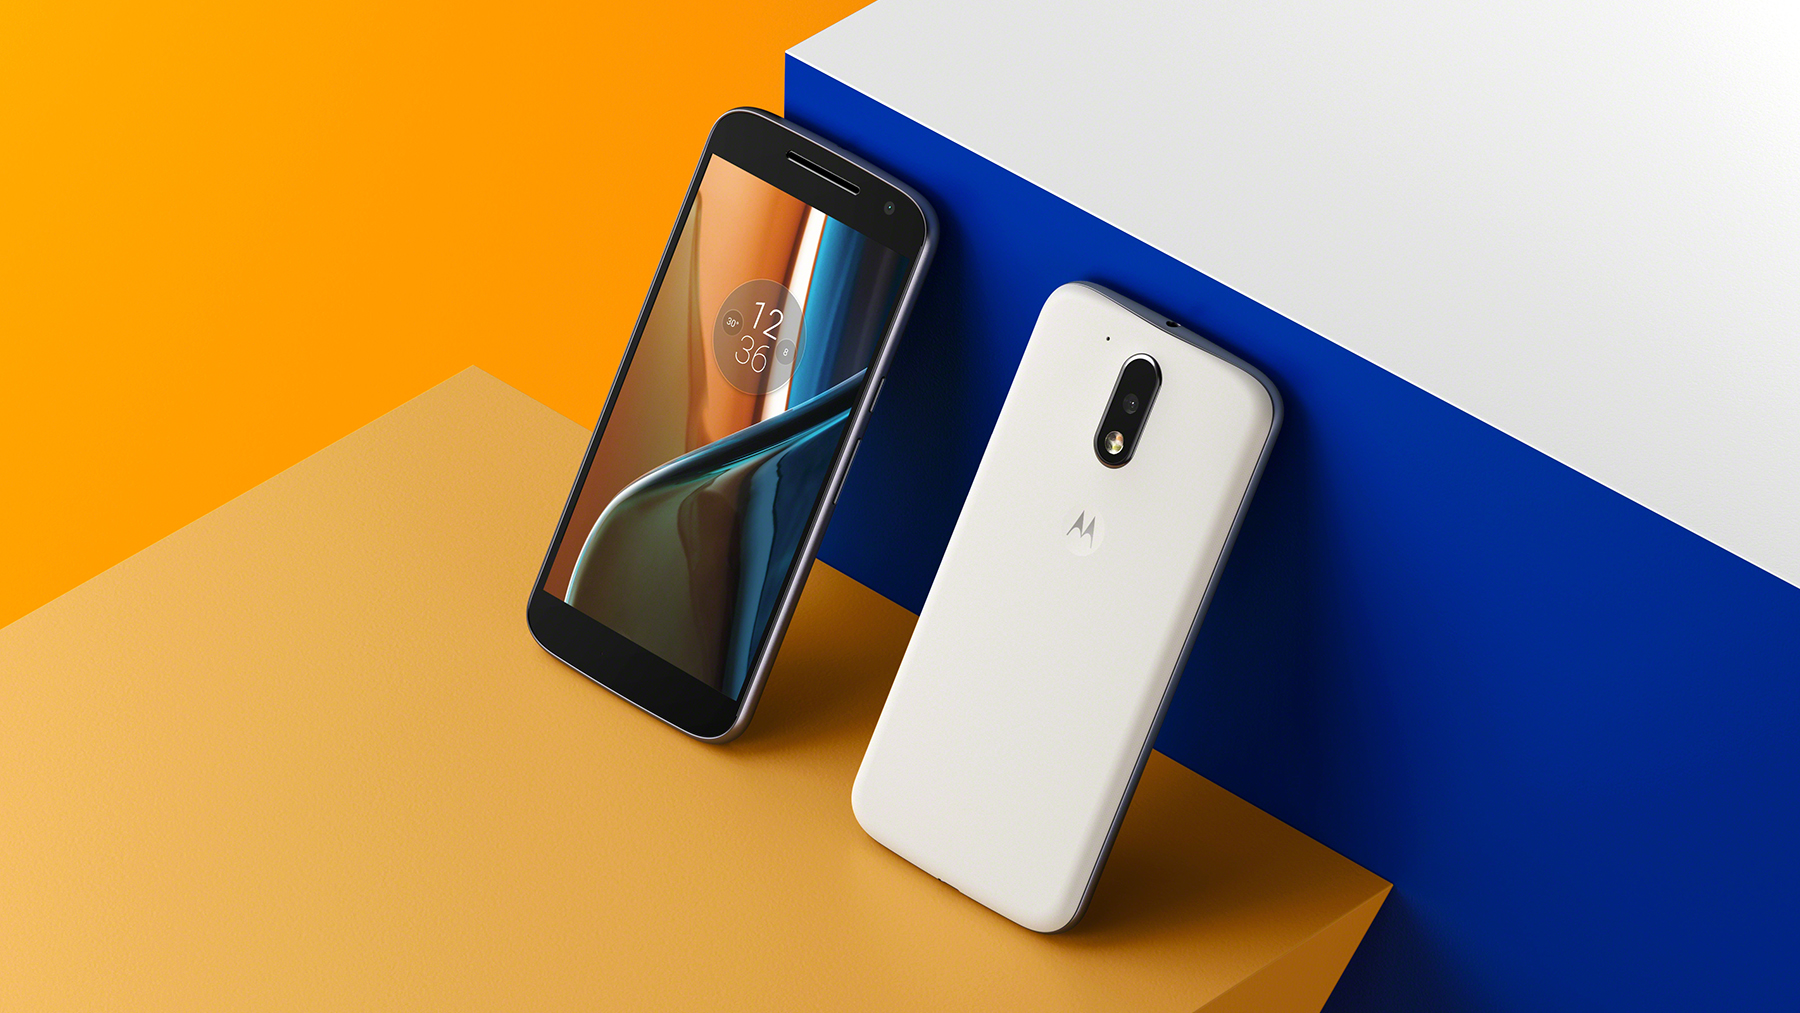 Lenovo's budget Moto G is back for 2016 with three models to